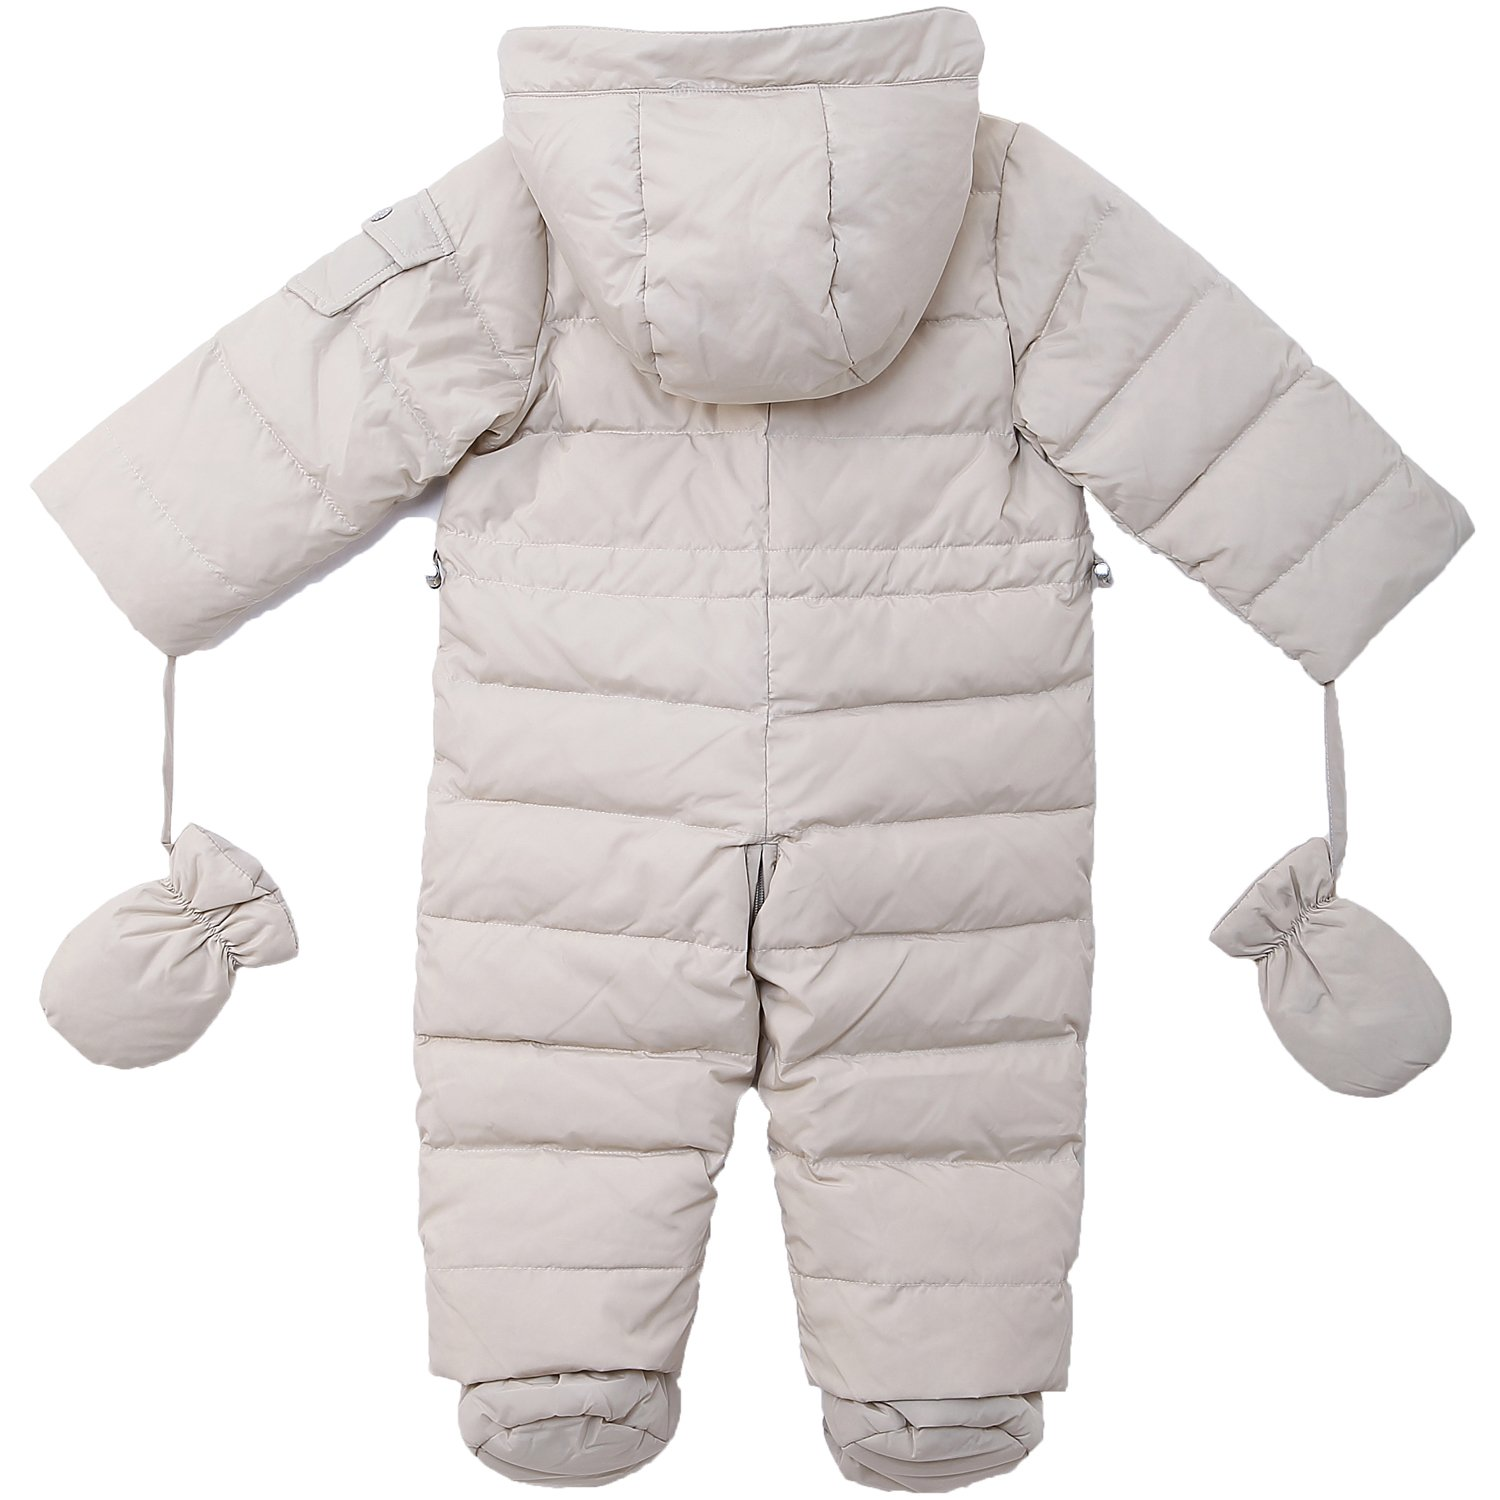 d7c9c2eca OCEANKIDS Baby Boys Pram One-Piece Snowsuit Attached Hood 0-24 ...